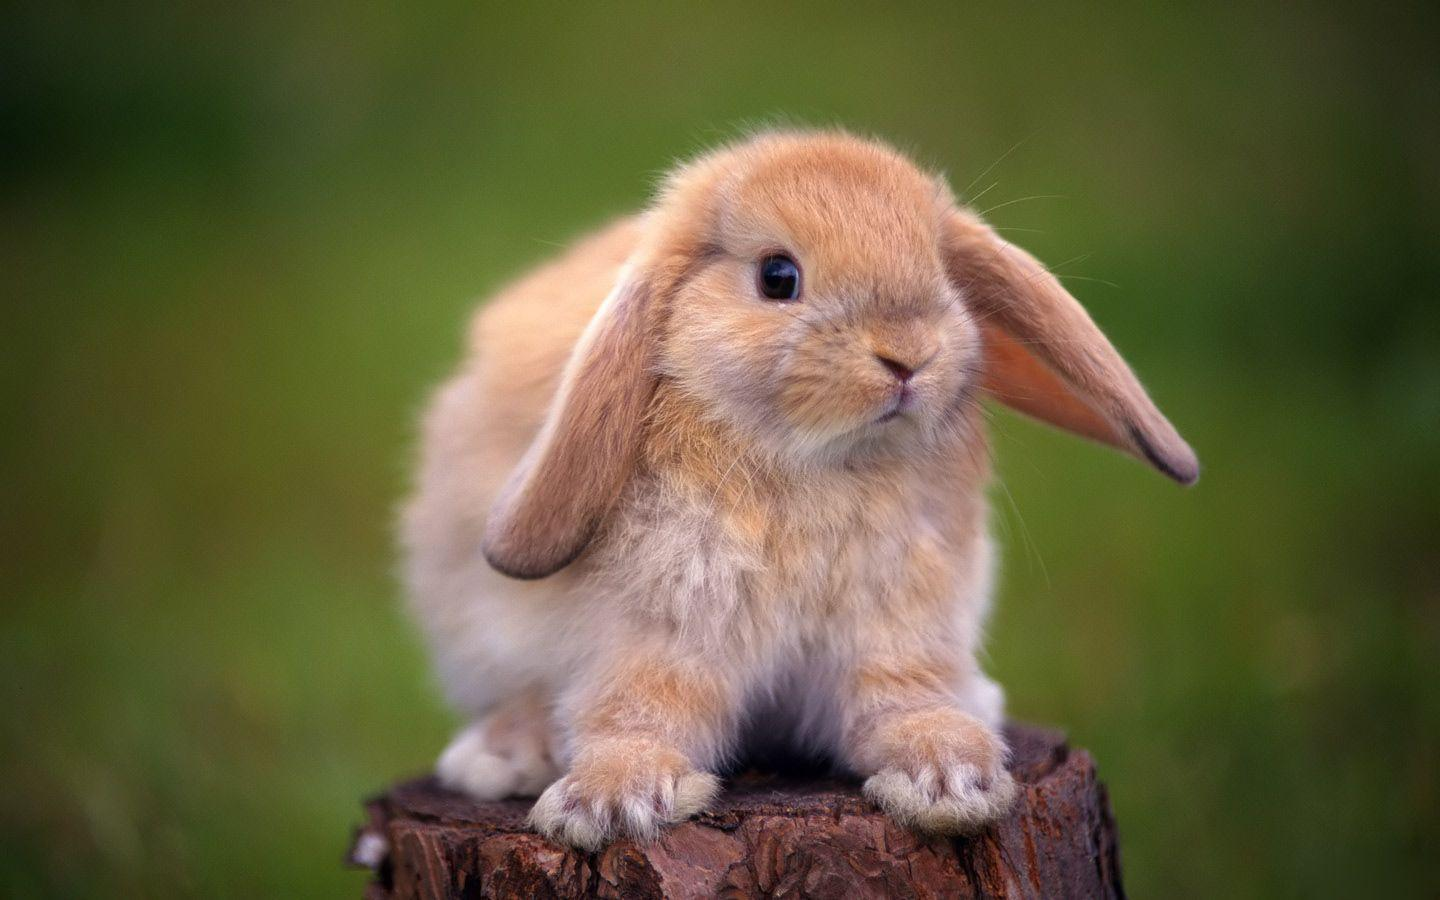 Bunny wallpapers wallpaper cave bunny hd wallpapers hd wallpapers inn voltagebd Image collections